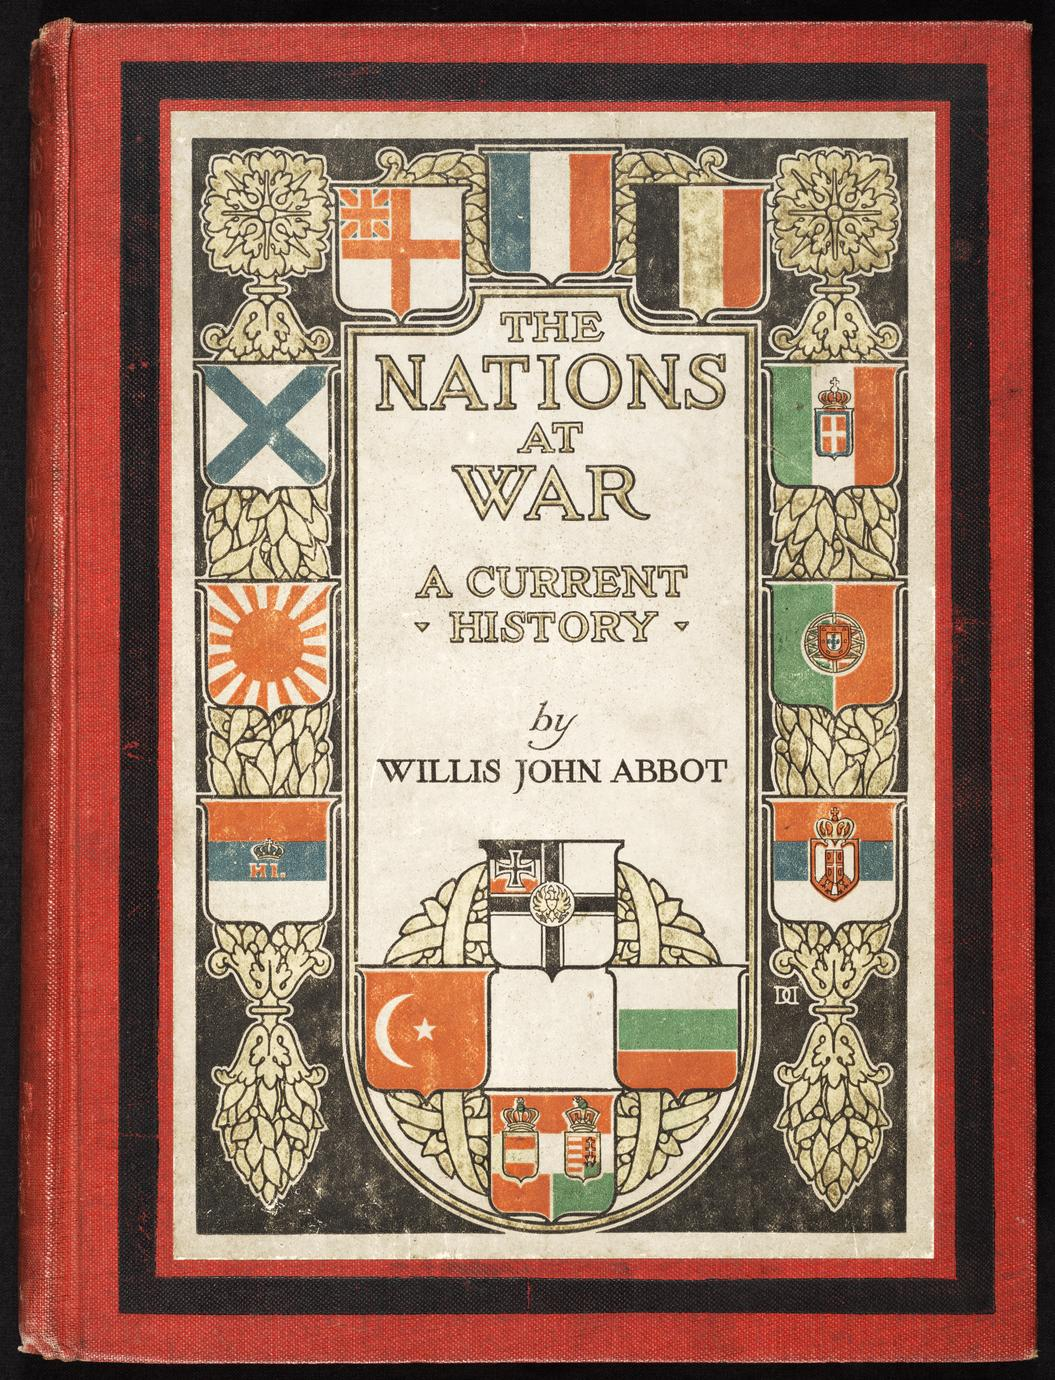 The nations at war (1 of 2)